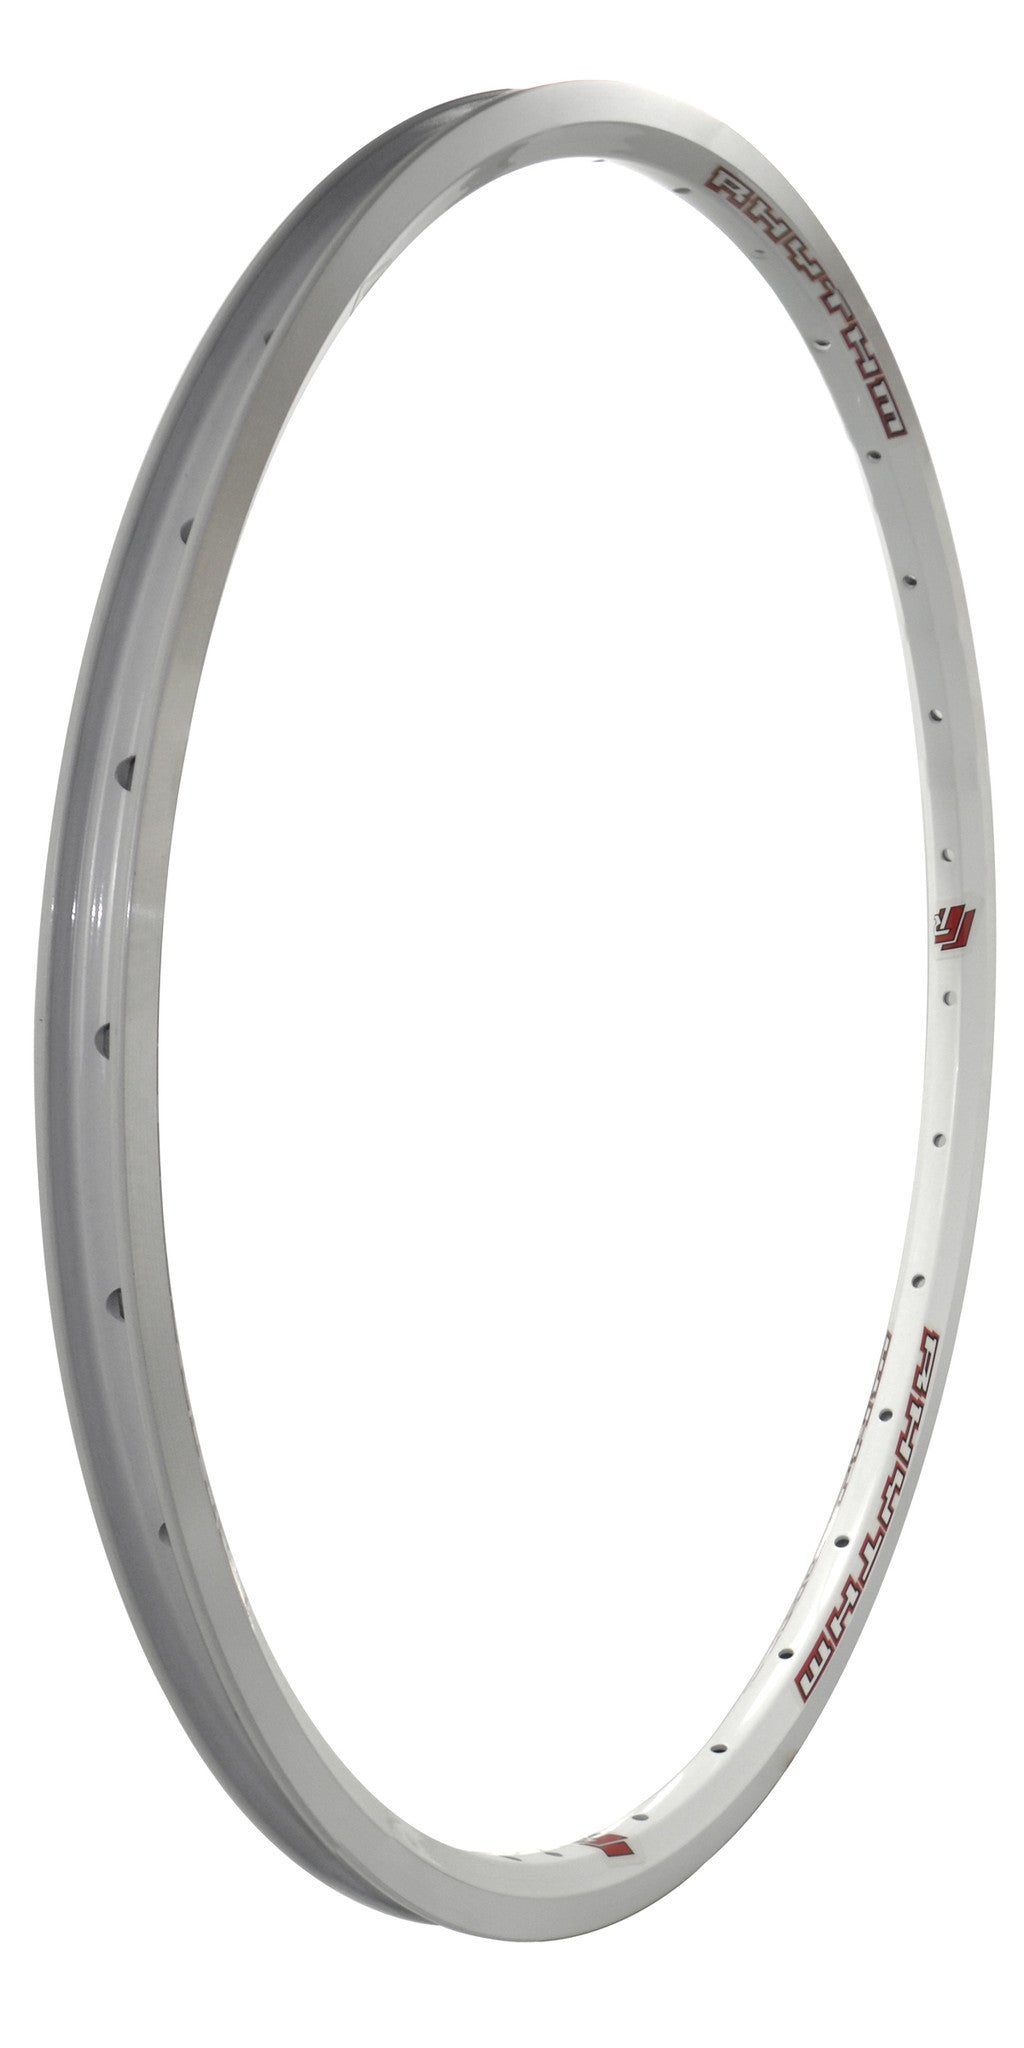 "Rhythm Section Expert 20 x 1-3/8"" Rims"